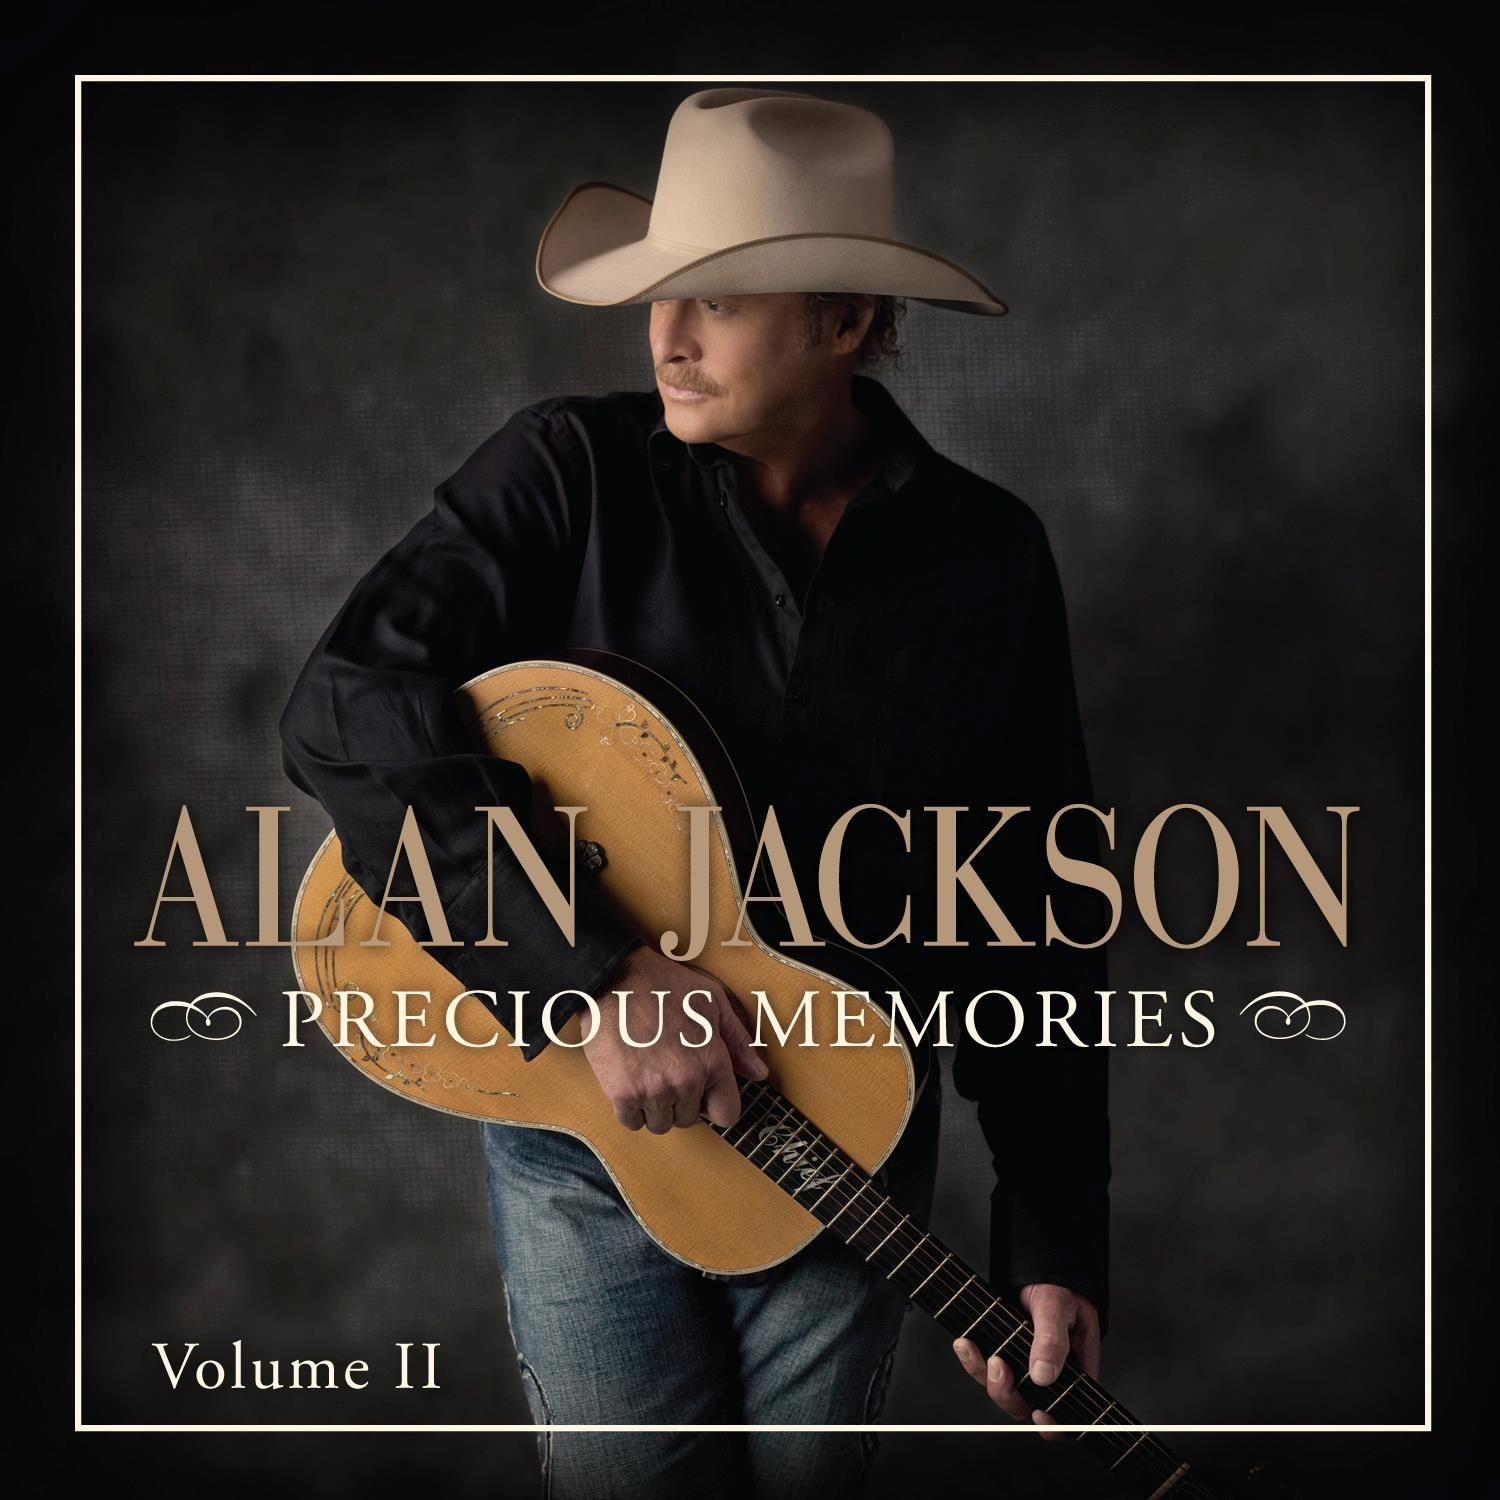 Alan Jackson S Latest Gospel Music Album Volume Ii Praise Songs